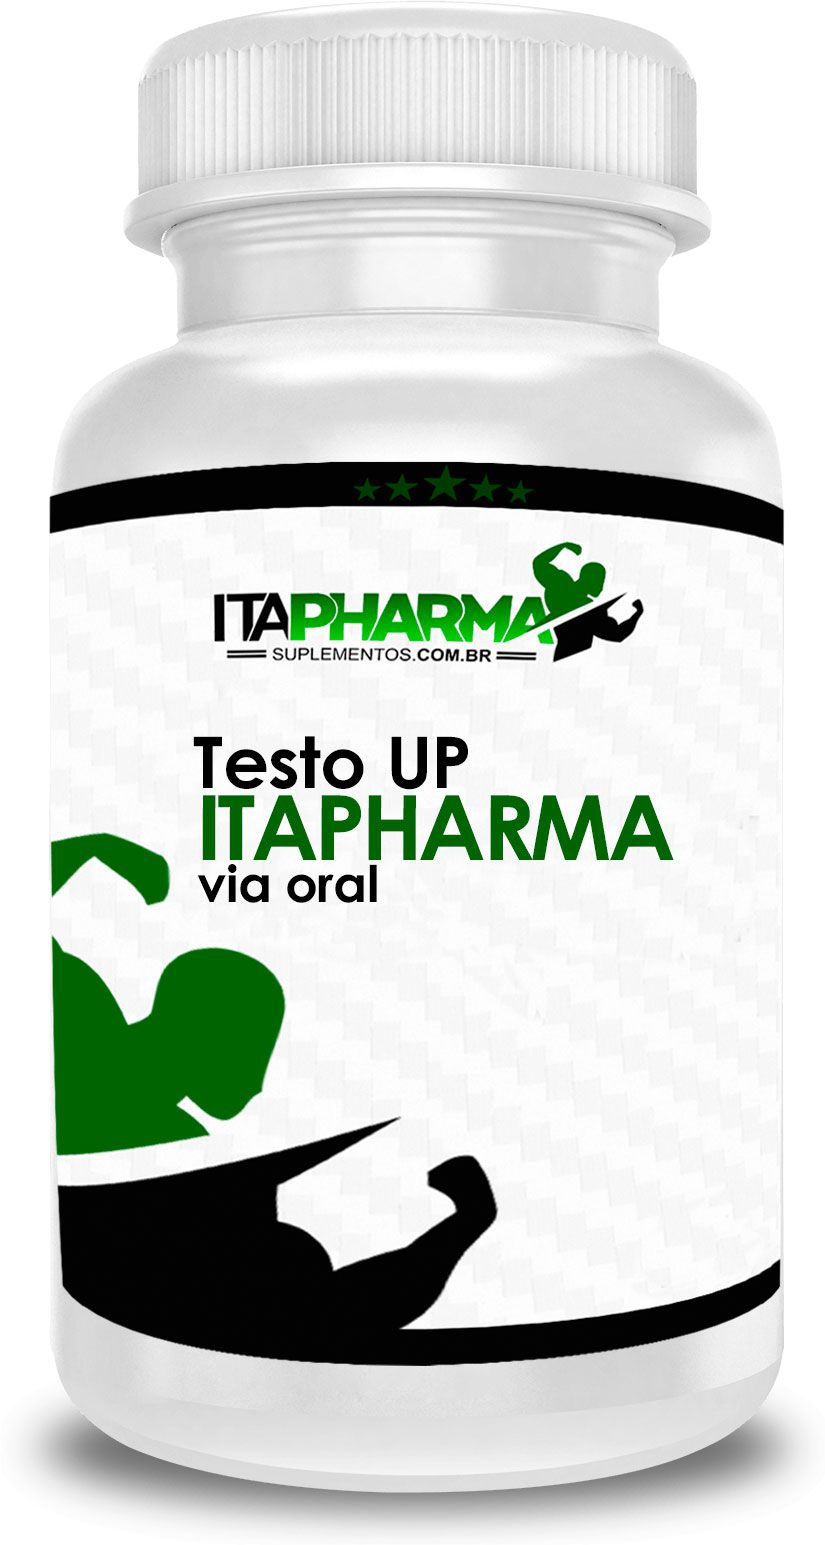 Testo Up Itapharma